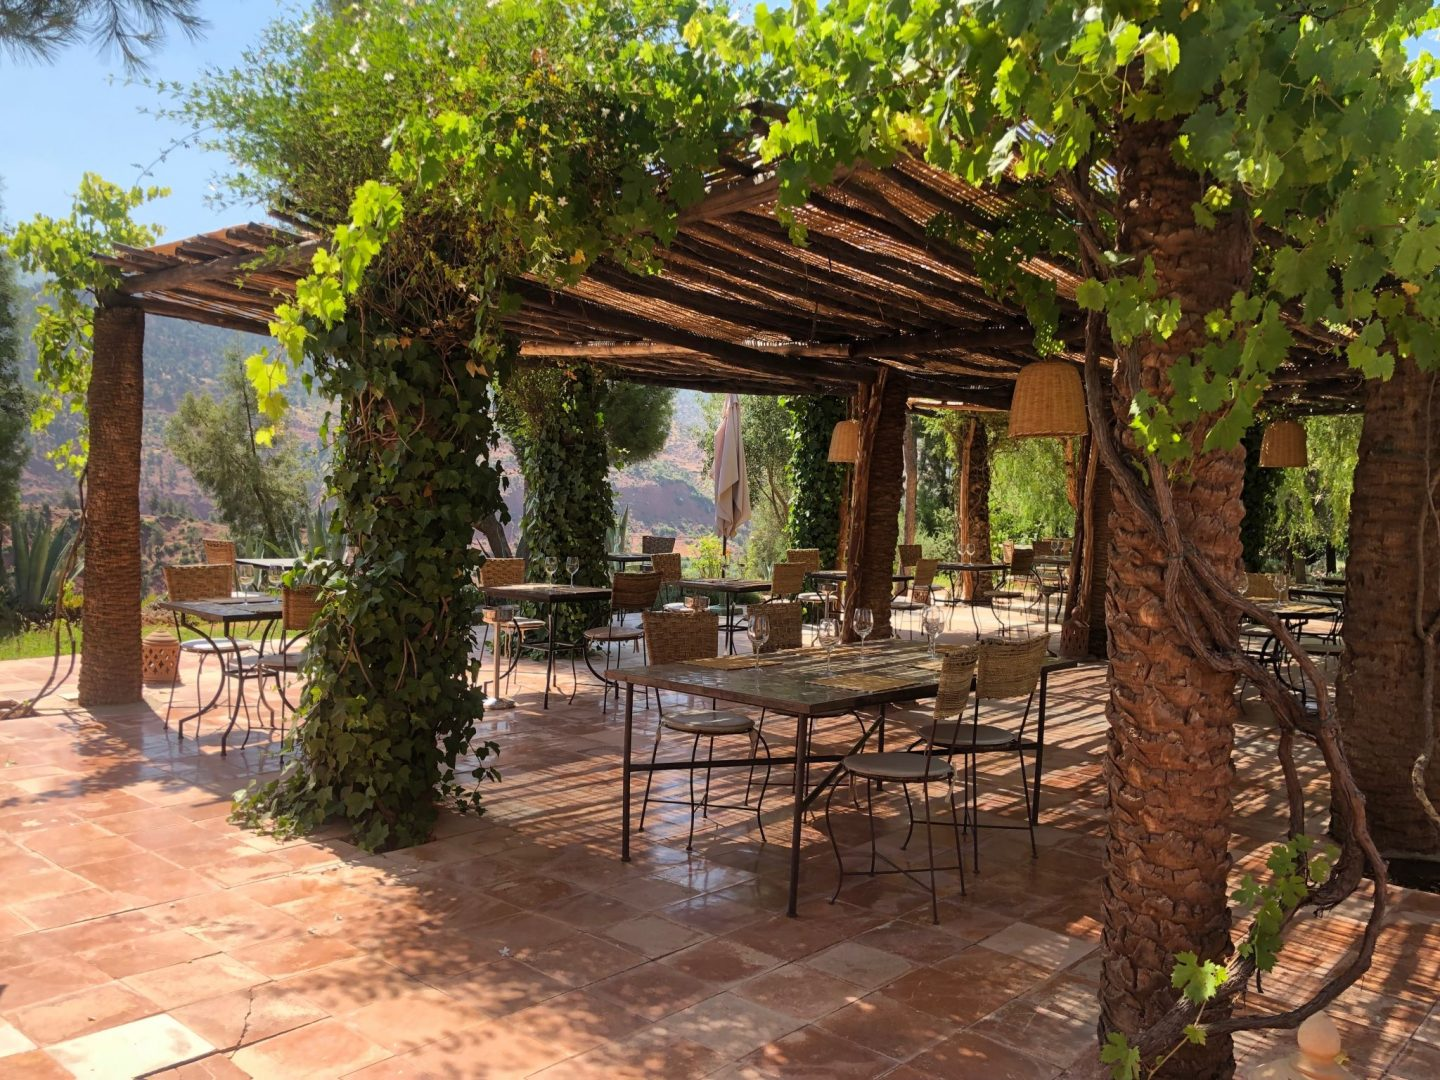 Al fresco dining at Kasbah Bab Ourika rustic luxury hotel in the Atlas Mountains